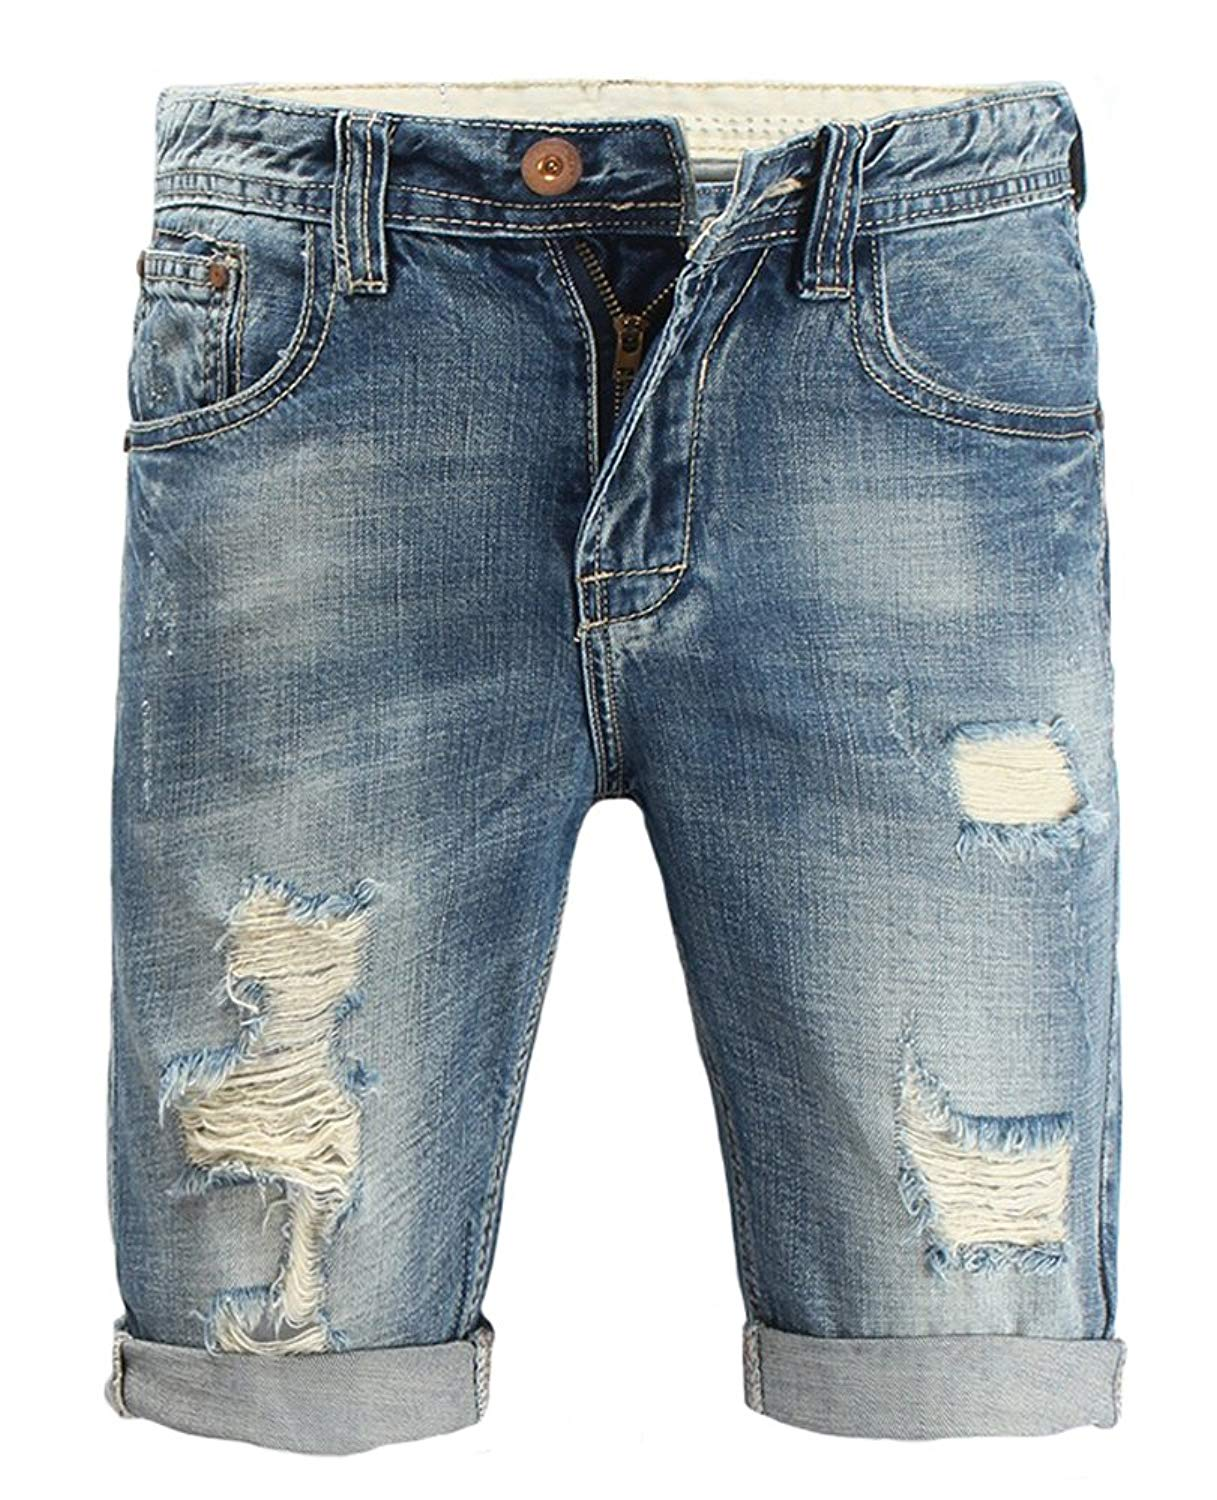 85b733a43e Get Quotations · Allonly Men's Fashion Casual Destroyed Ripped Slim Fit Denim  Shorts Jean Short With Broken Holes